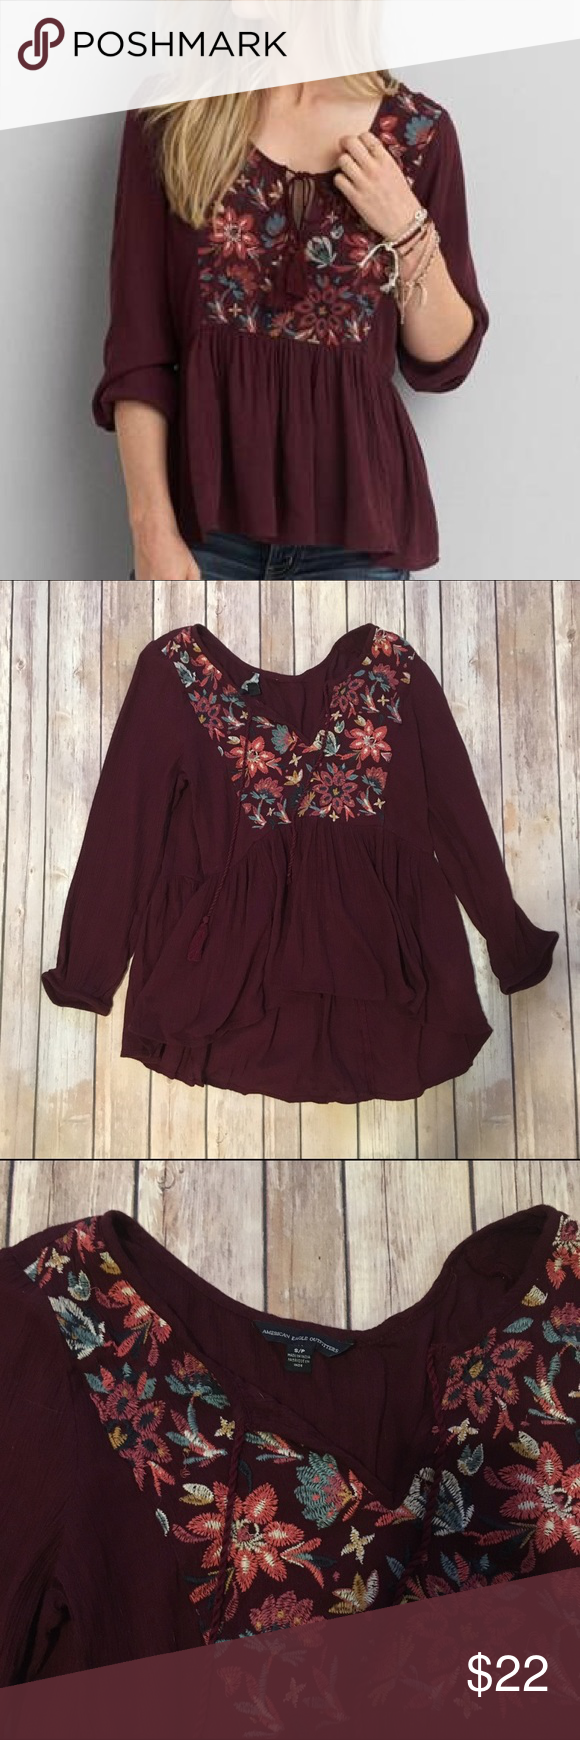 """American Eagle Embroidered Peasant Top Beautiful peasant top with embroidery detail! Beautiful burgundy shade. Gauzy material. Only """"flaw"""" is that the size tag came unstitched on one end. Excellent pre-loved condition, only worn a couple of times!   🚫no trades 🚫no modeling ✅dog friendly/🚭smoke free home ✅reasonable offers ✅bundle & save! American Eagle Outfitters Tops Blouses"""